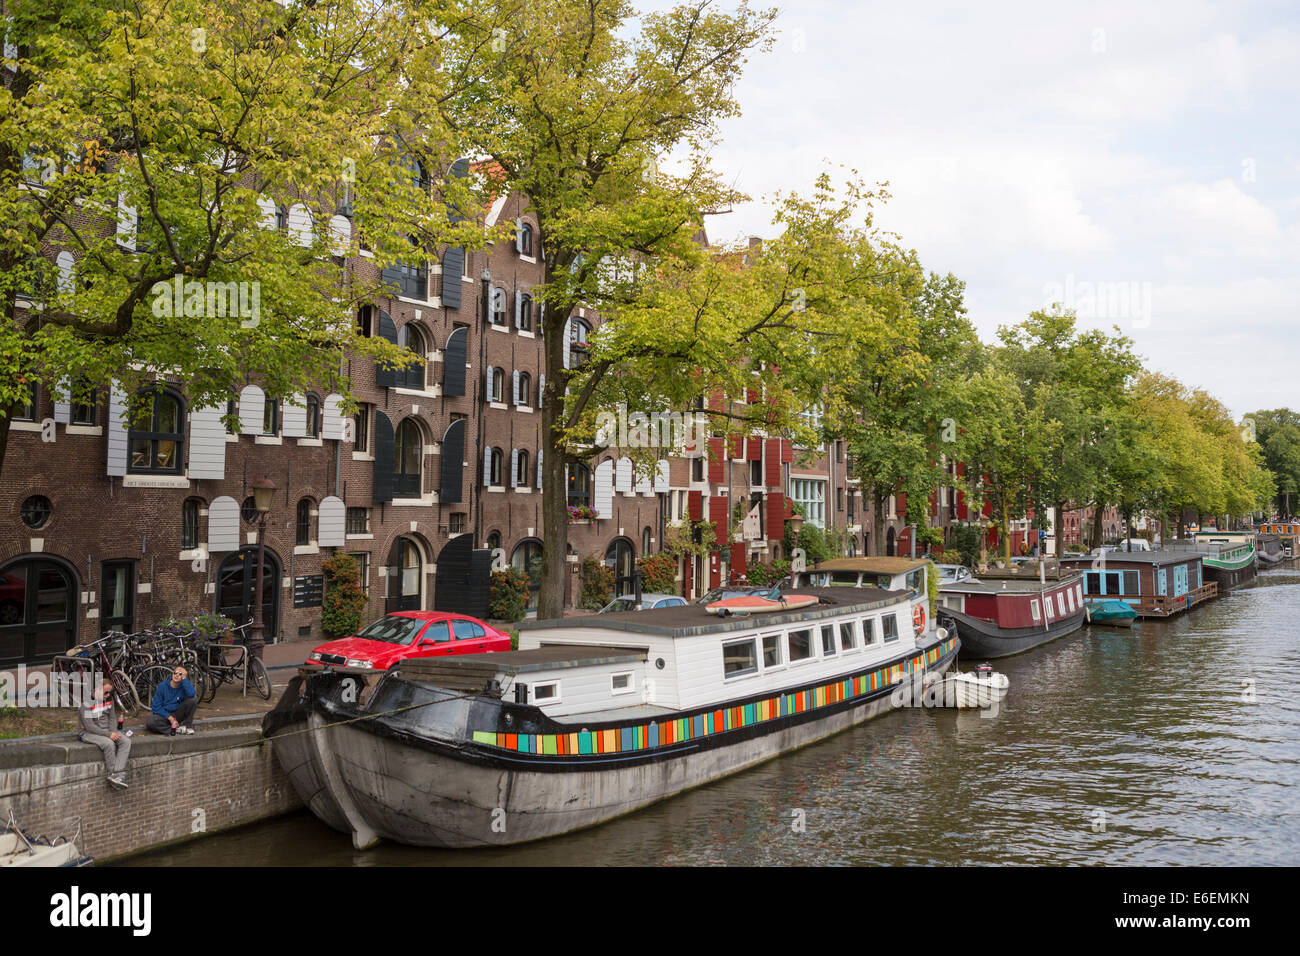 people relaxing at the side of one of the canals (Prinsengracht) in Amsterdam in the Netherlands - Stock Image